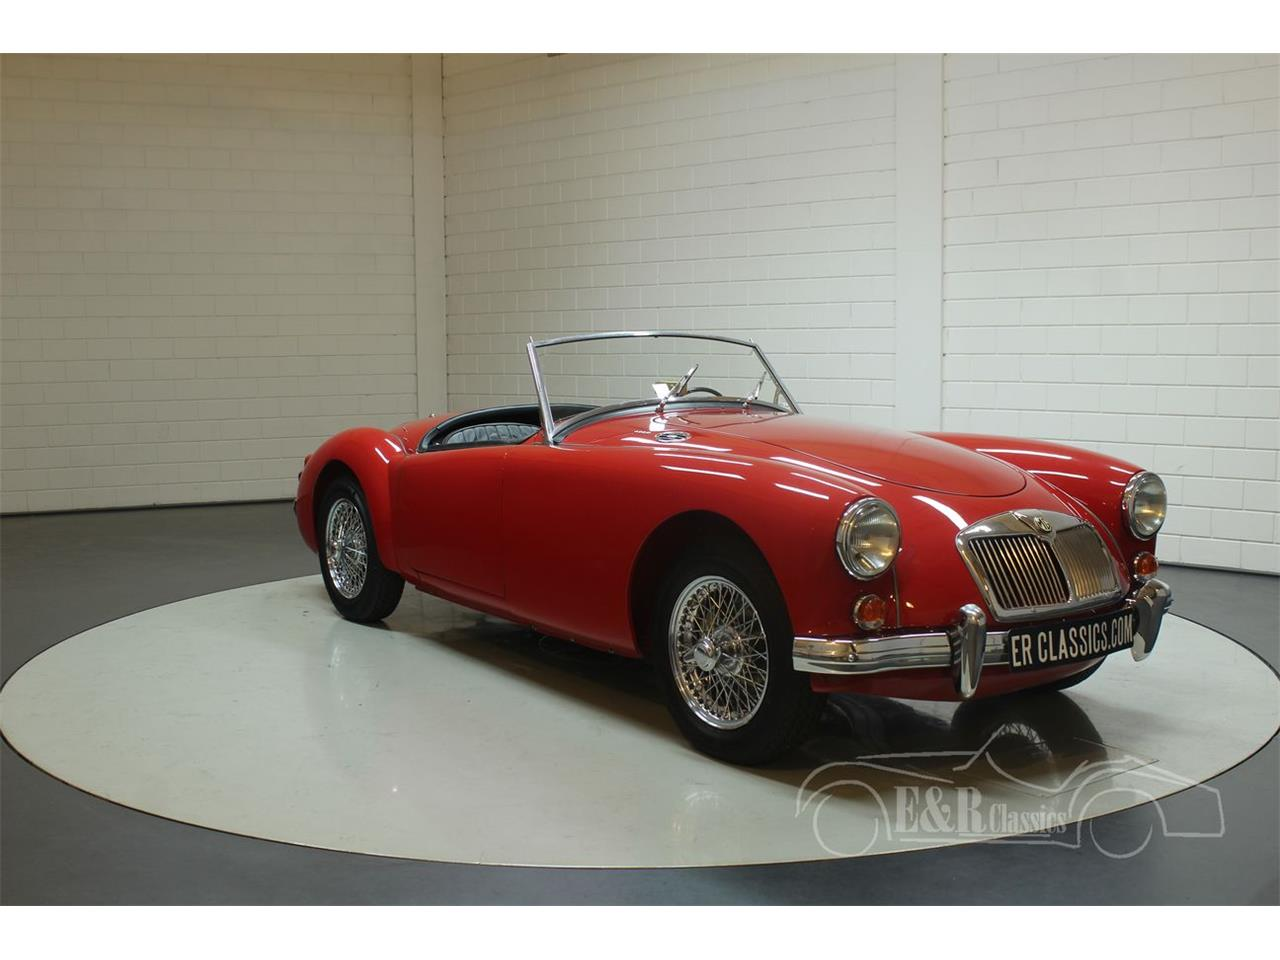 Large Picture of Classic '59 MG MGA located in Waalwijk - Keine Angabe - Offered by E & R Classics - PGST